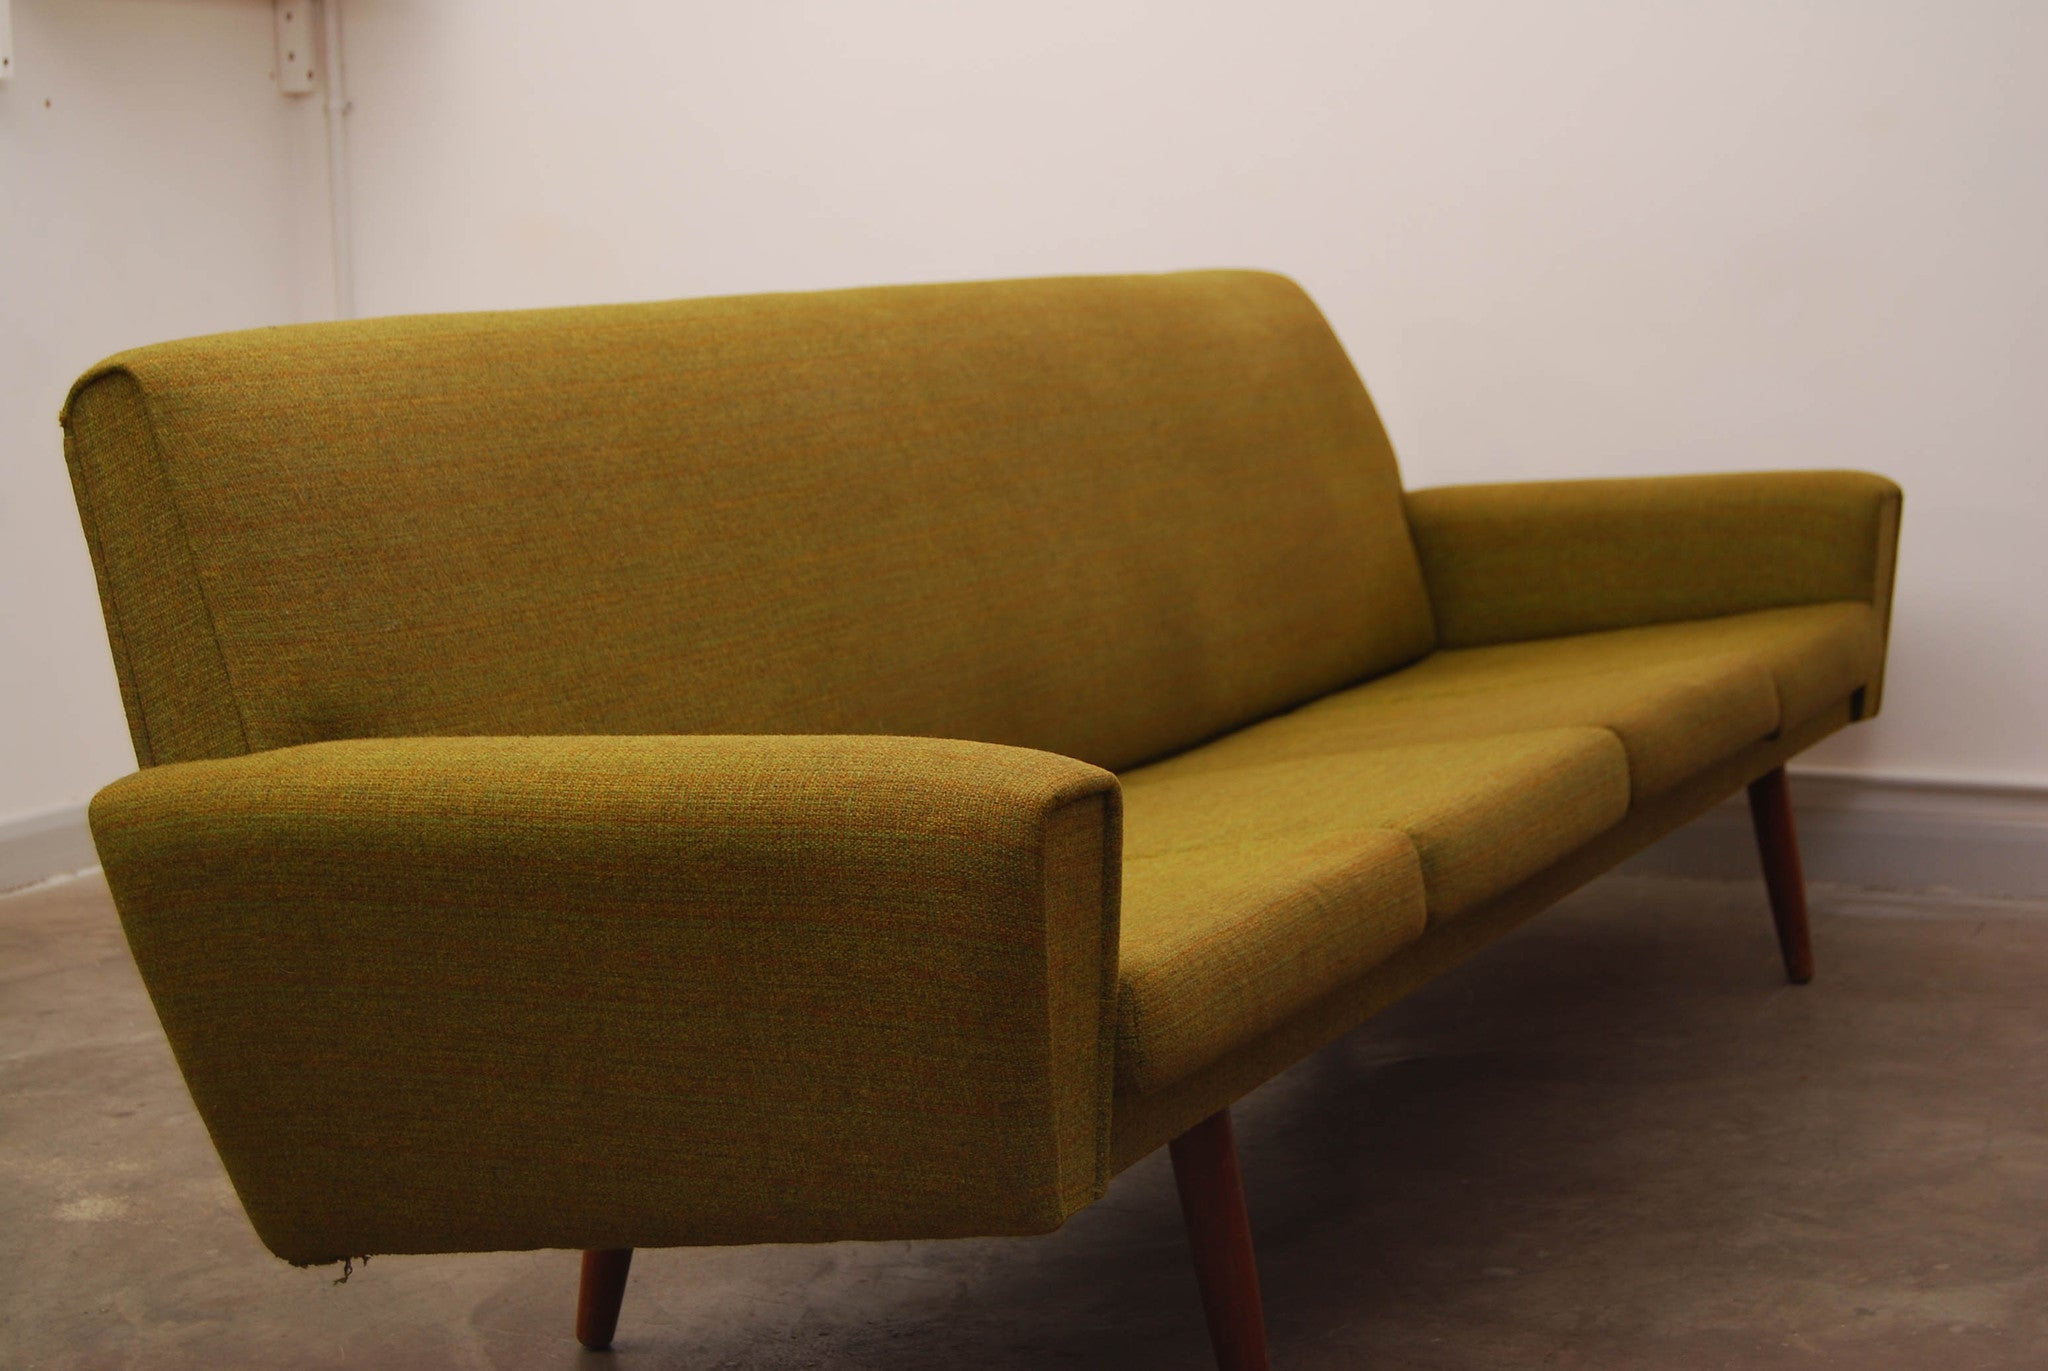 Four seat sofa in olive green wool